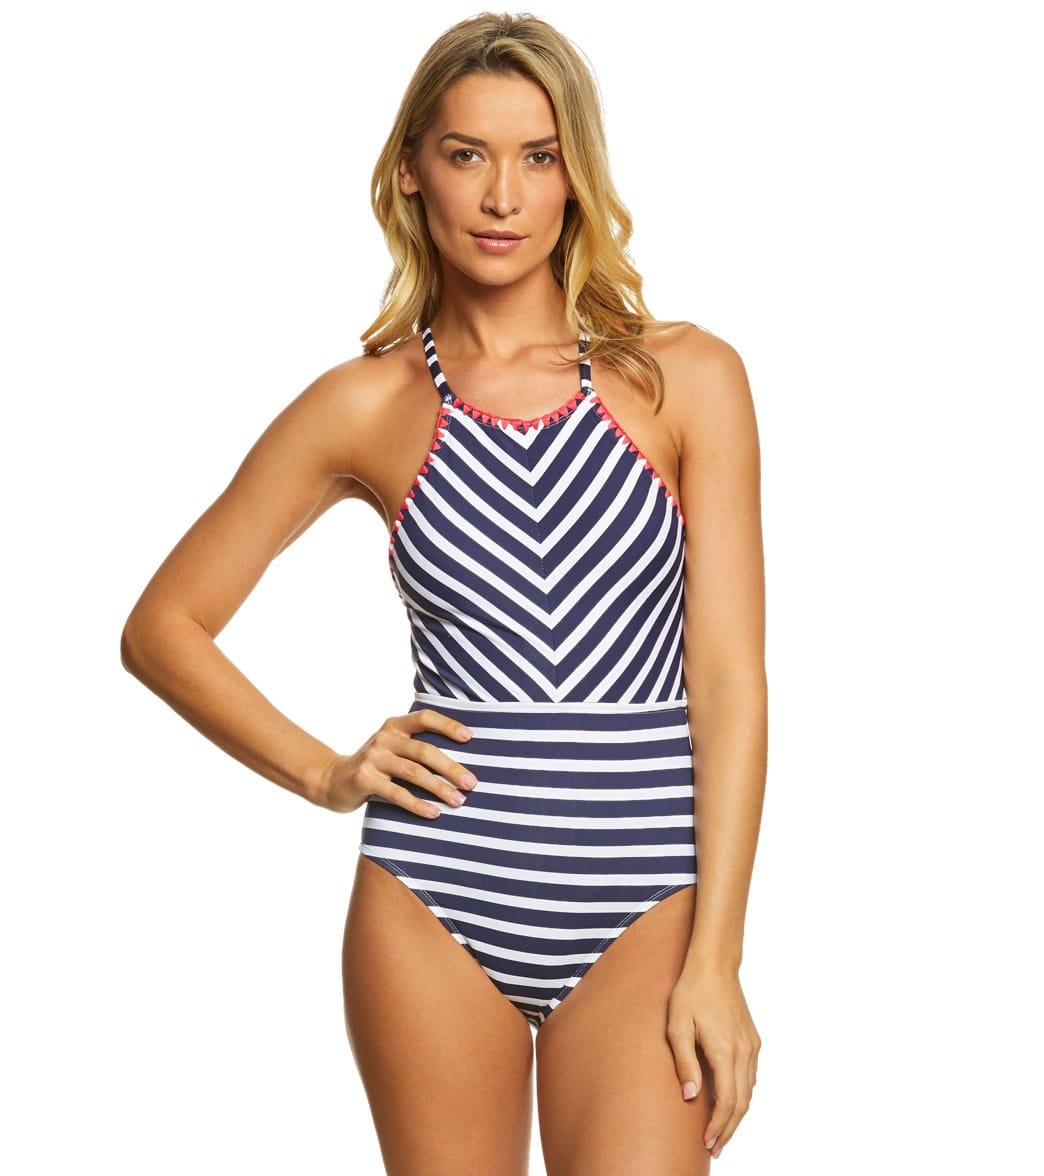 09be84ff0a6e4 Tommy Bahama Breton Stripe High Neck One Piece Swimsuit at SwimOutlet.com -  Free Shipping